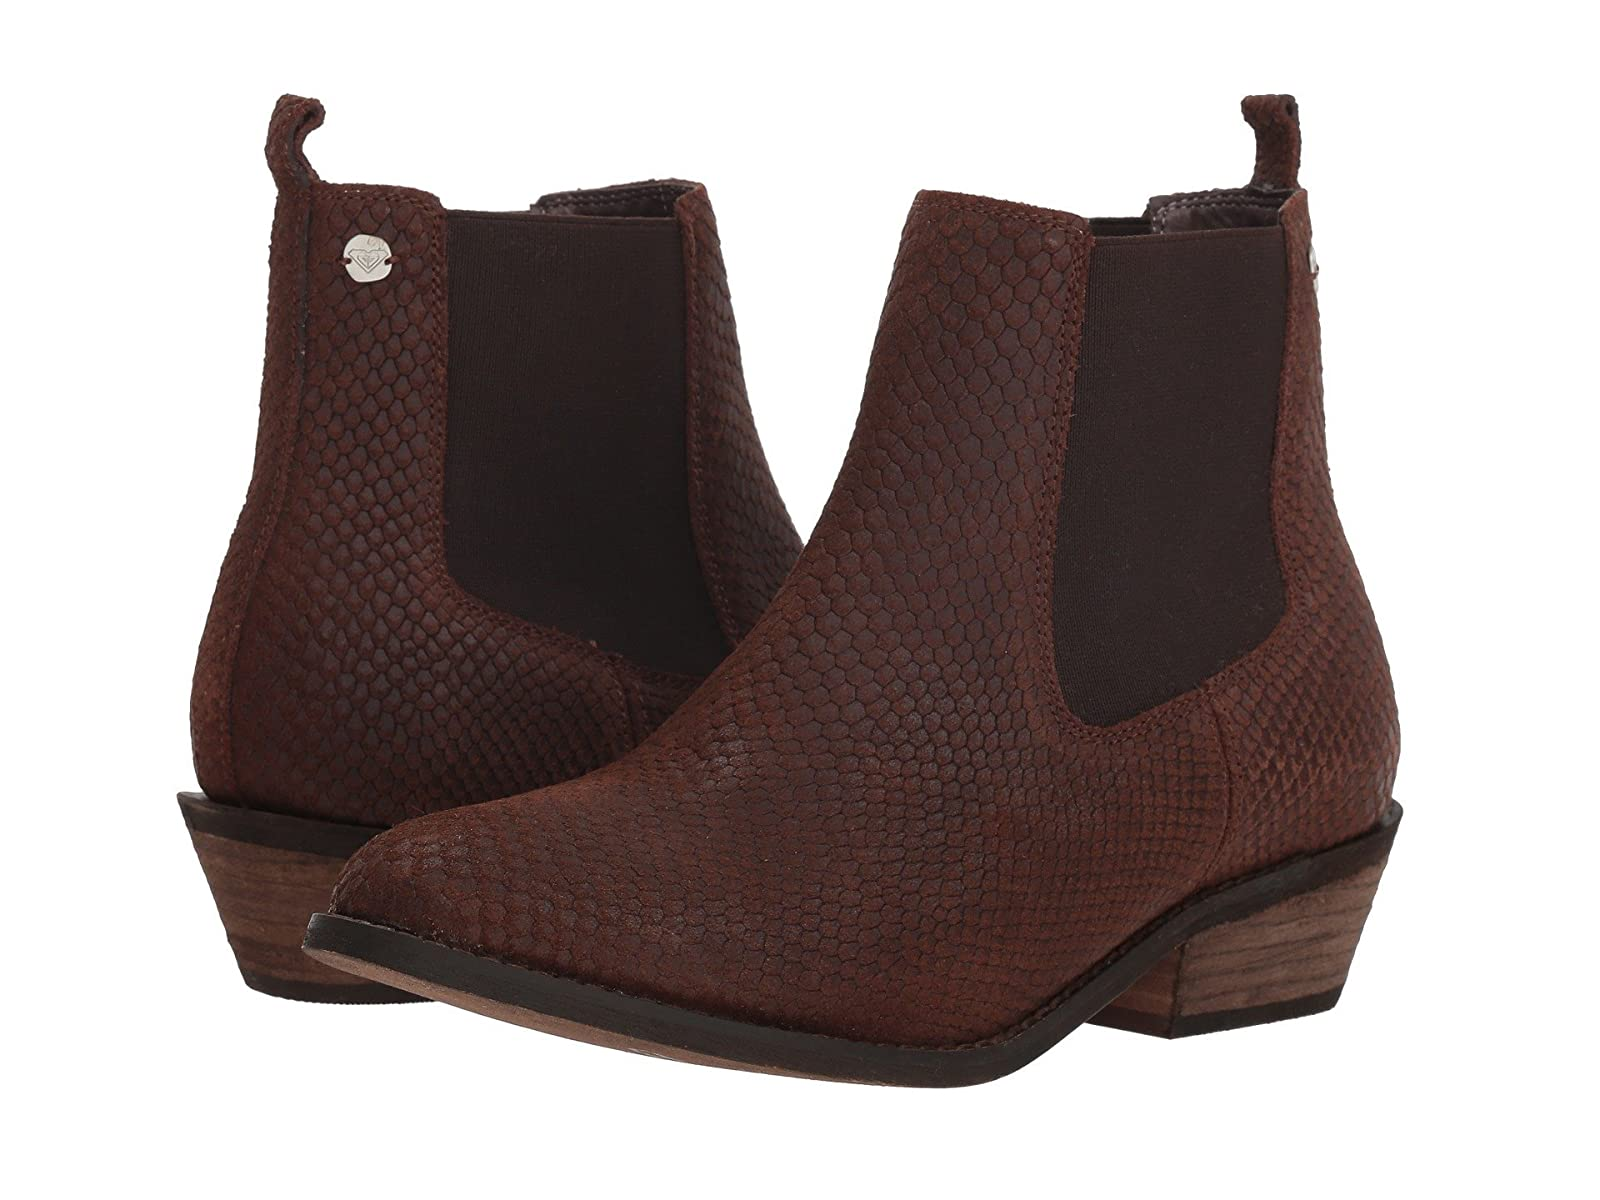 Roxy KarinaEconomical and quality shoes